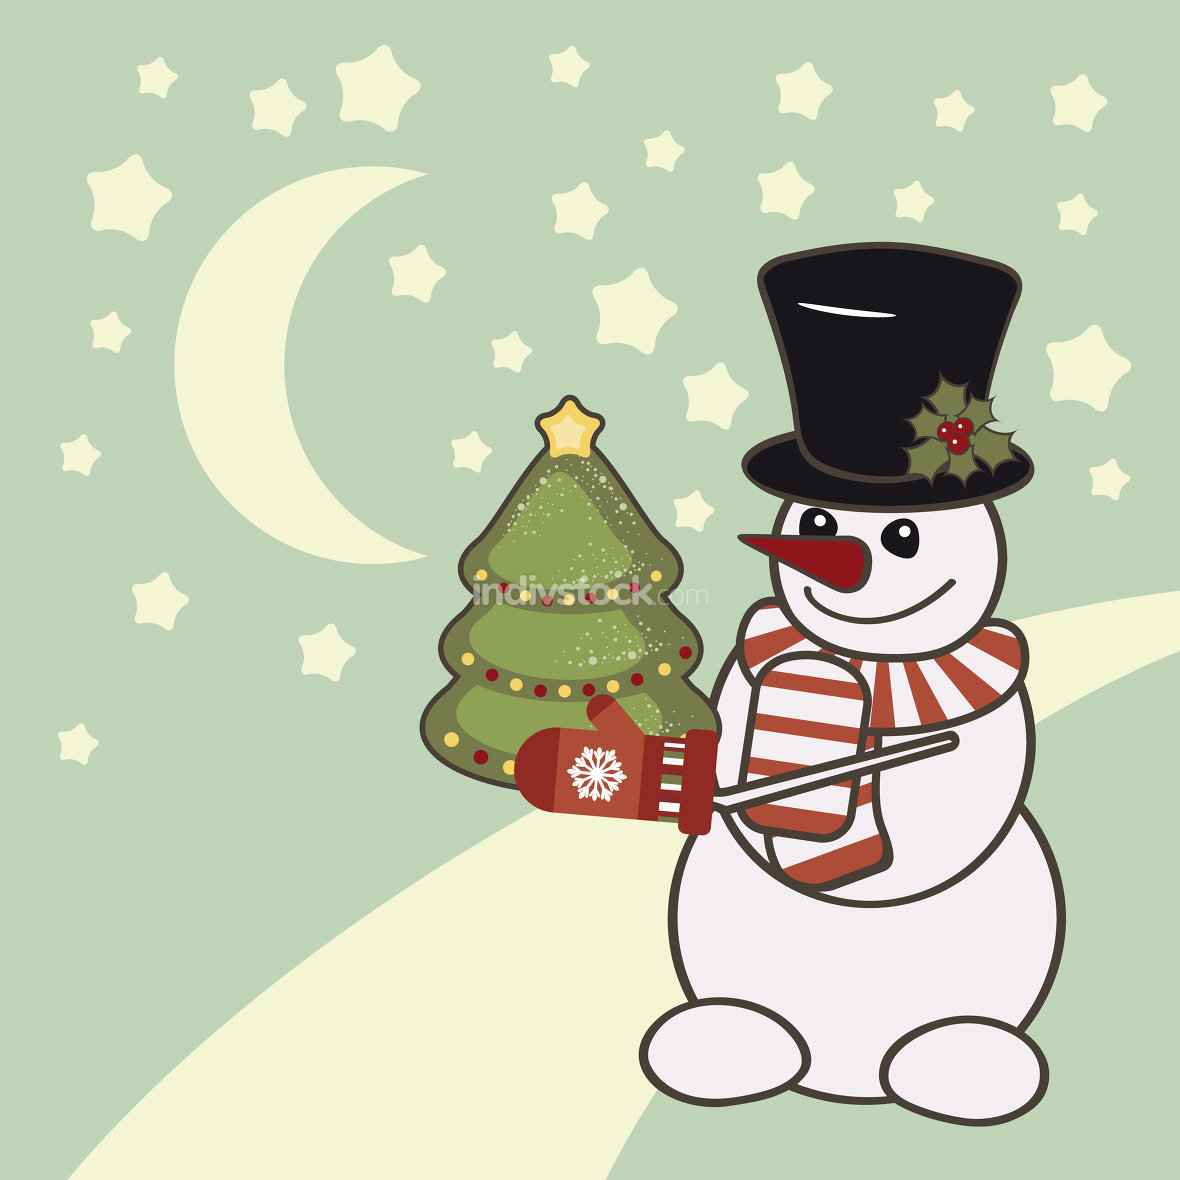 Retro Christmas card with a snowman.